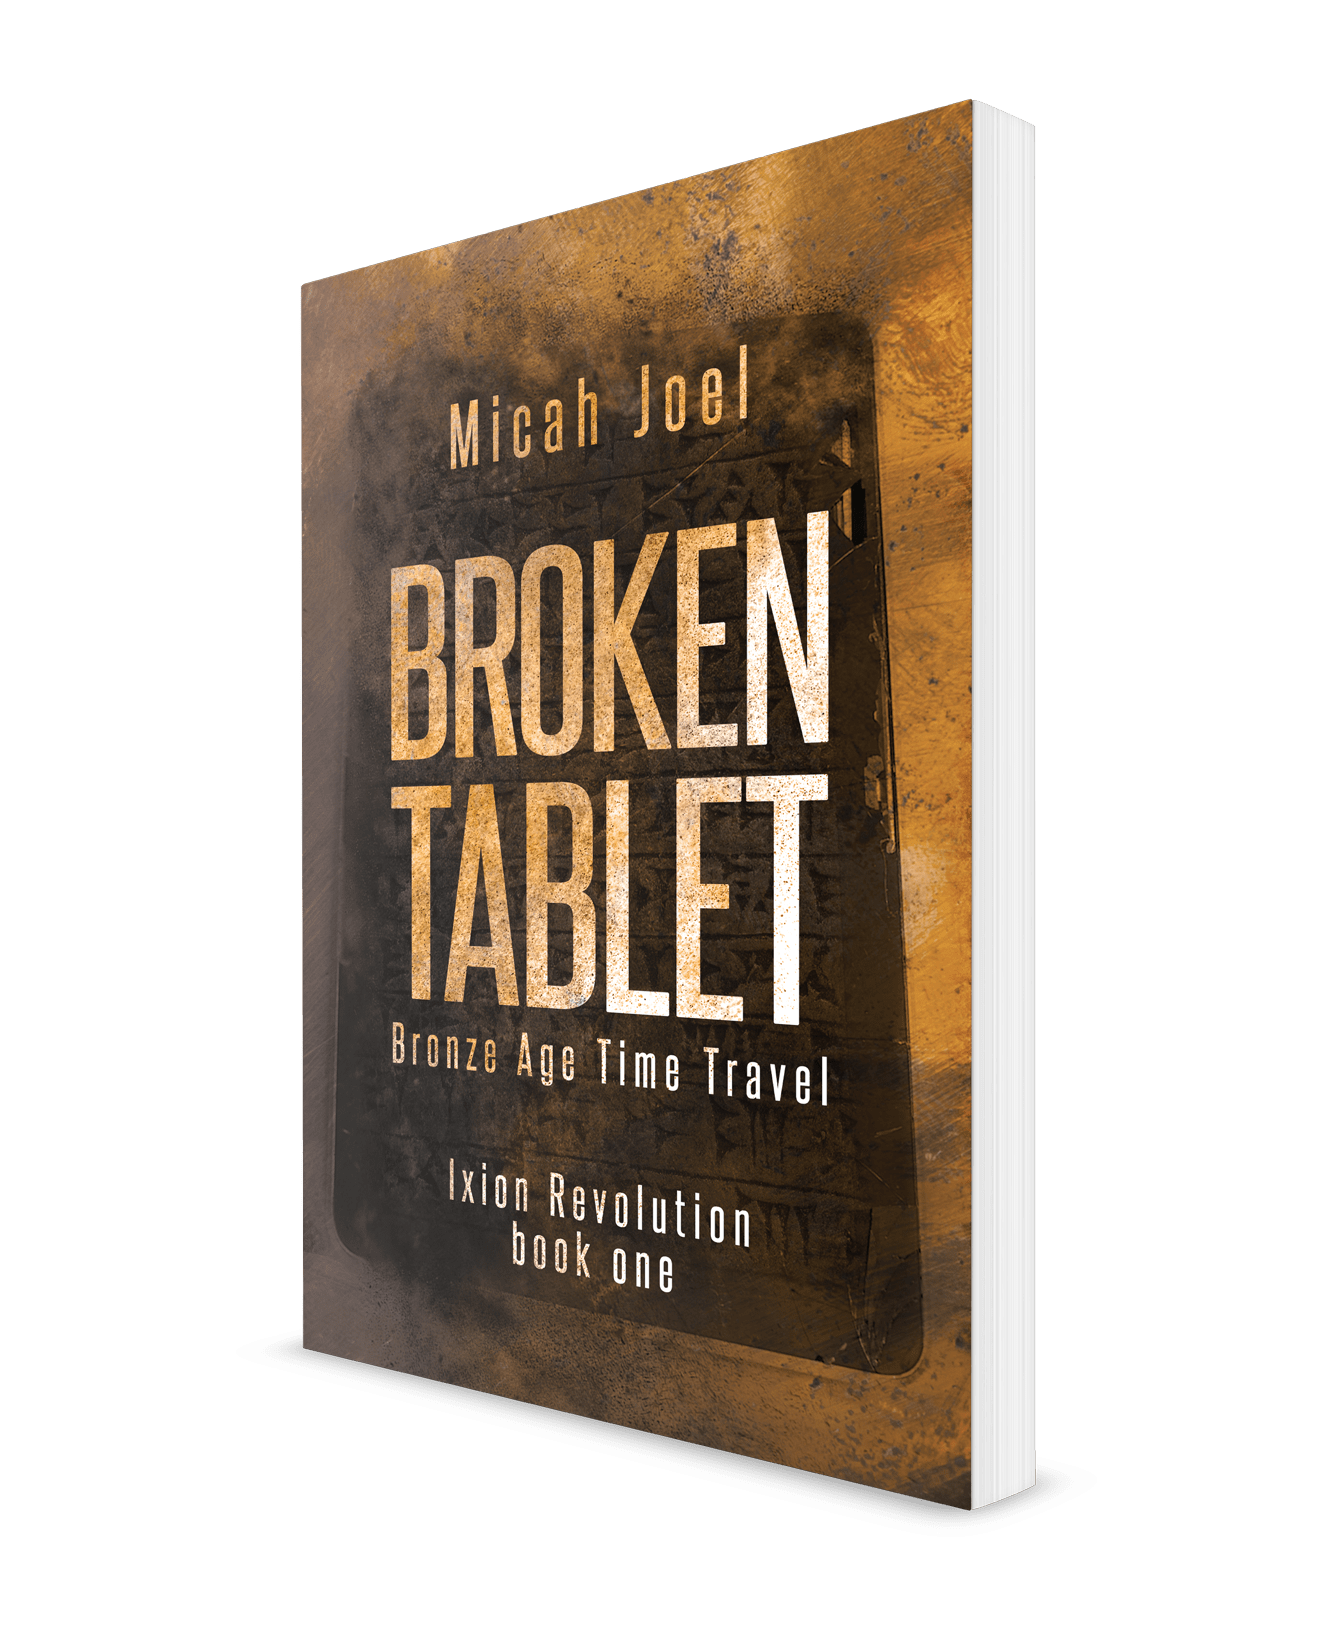 Joel_BROKEN-TABLET_3D-mockup1